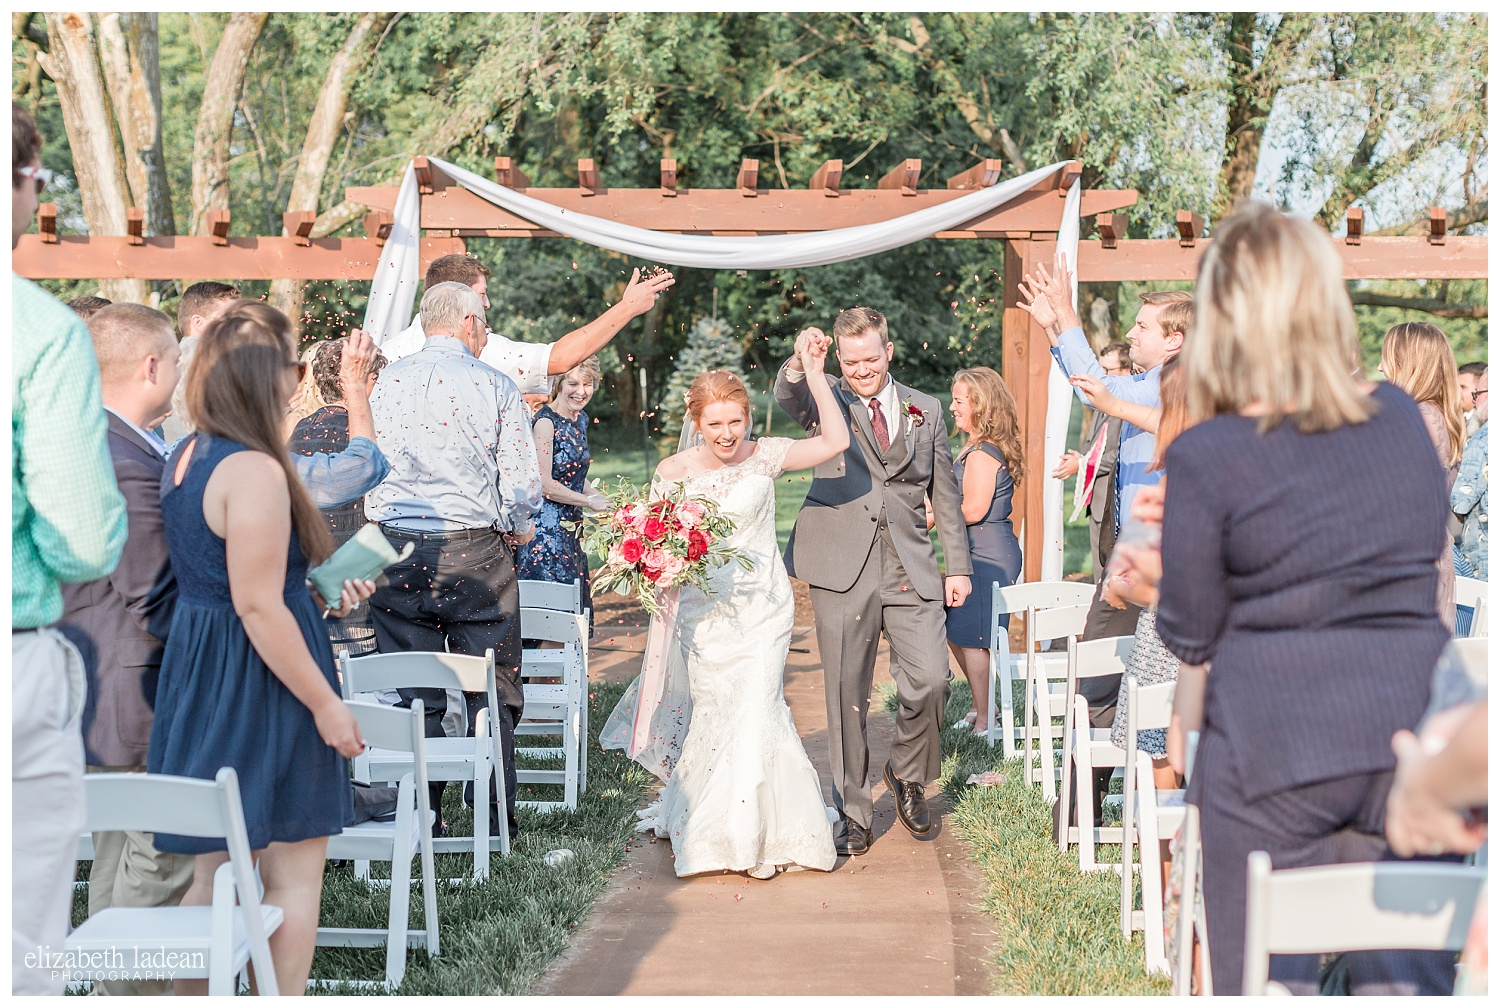 Burgundy-and-Gold-Wedding-Kansas-City-The-Legacy-at-Green-Hills-M+T0902-Elizabeth-Ladean-Photography-photo-_2300.jpg